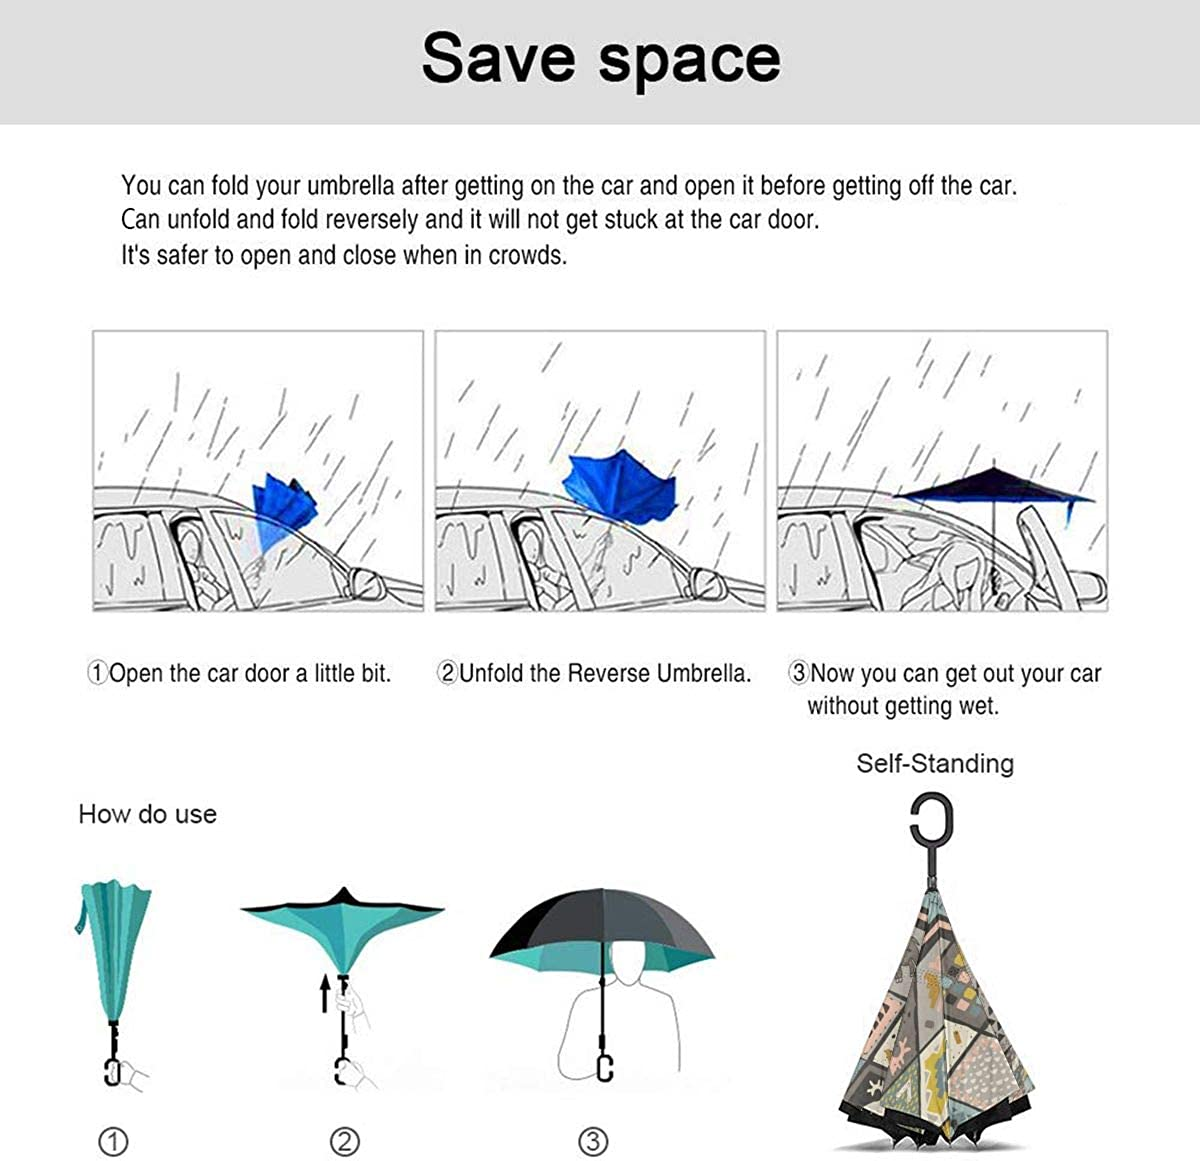 Southwestern With Deers Buffalo Reverse Umbrella Double Layer Inverted Umbrellas For Car Rain Outdoor With C-Shaped Handle Customized